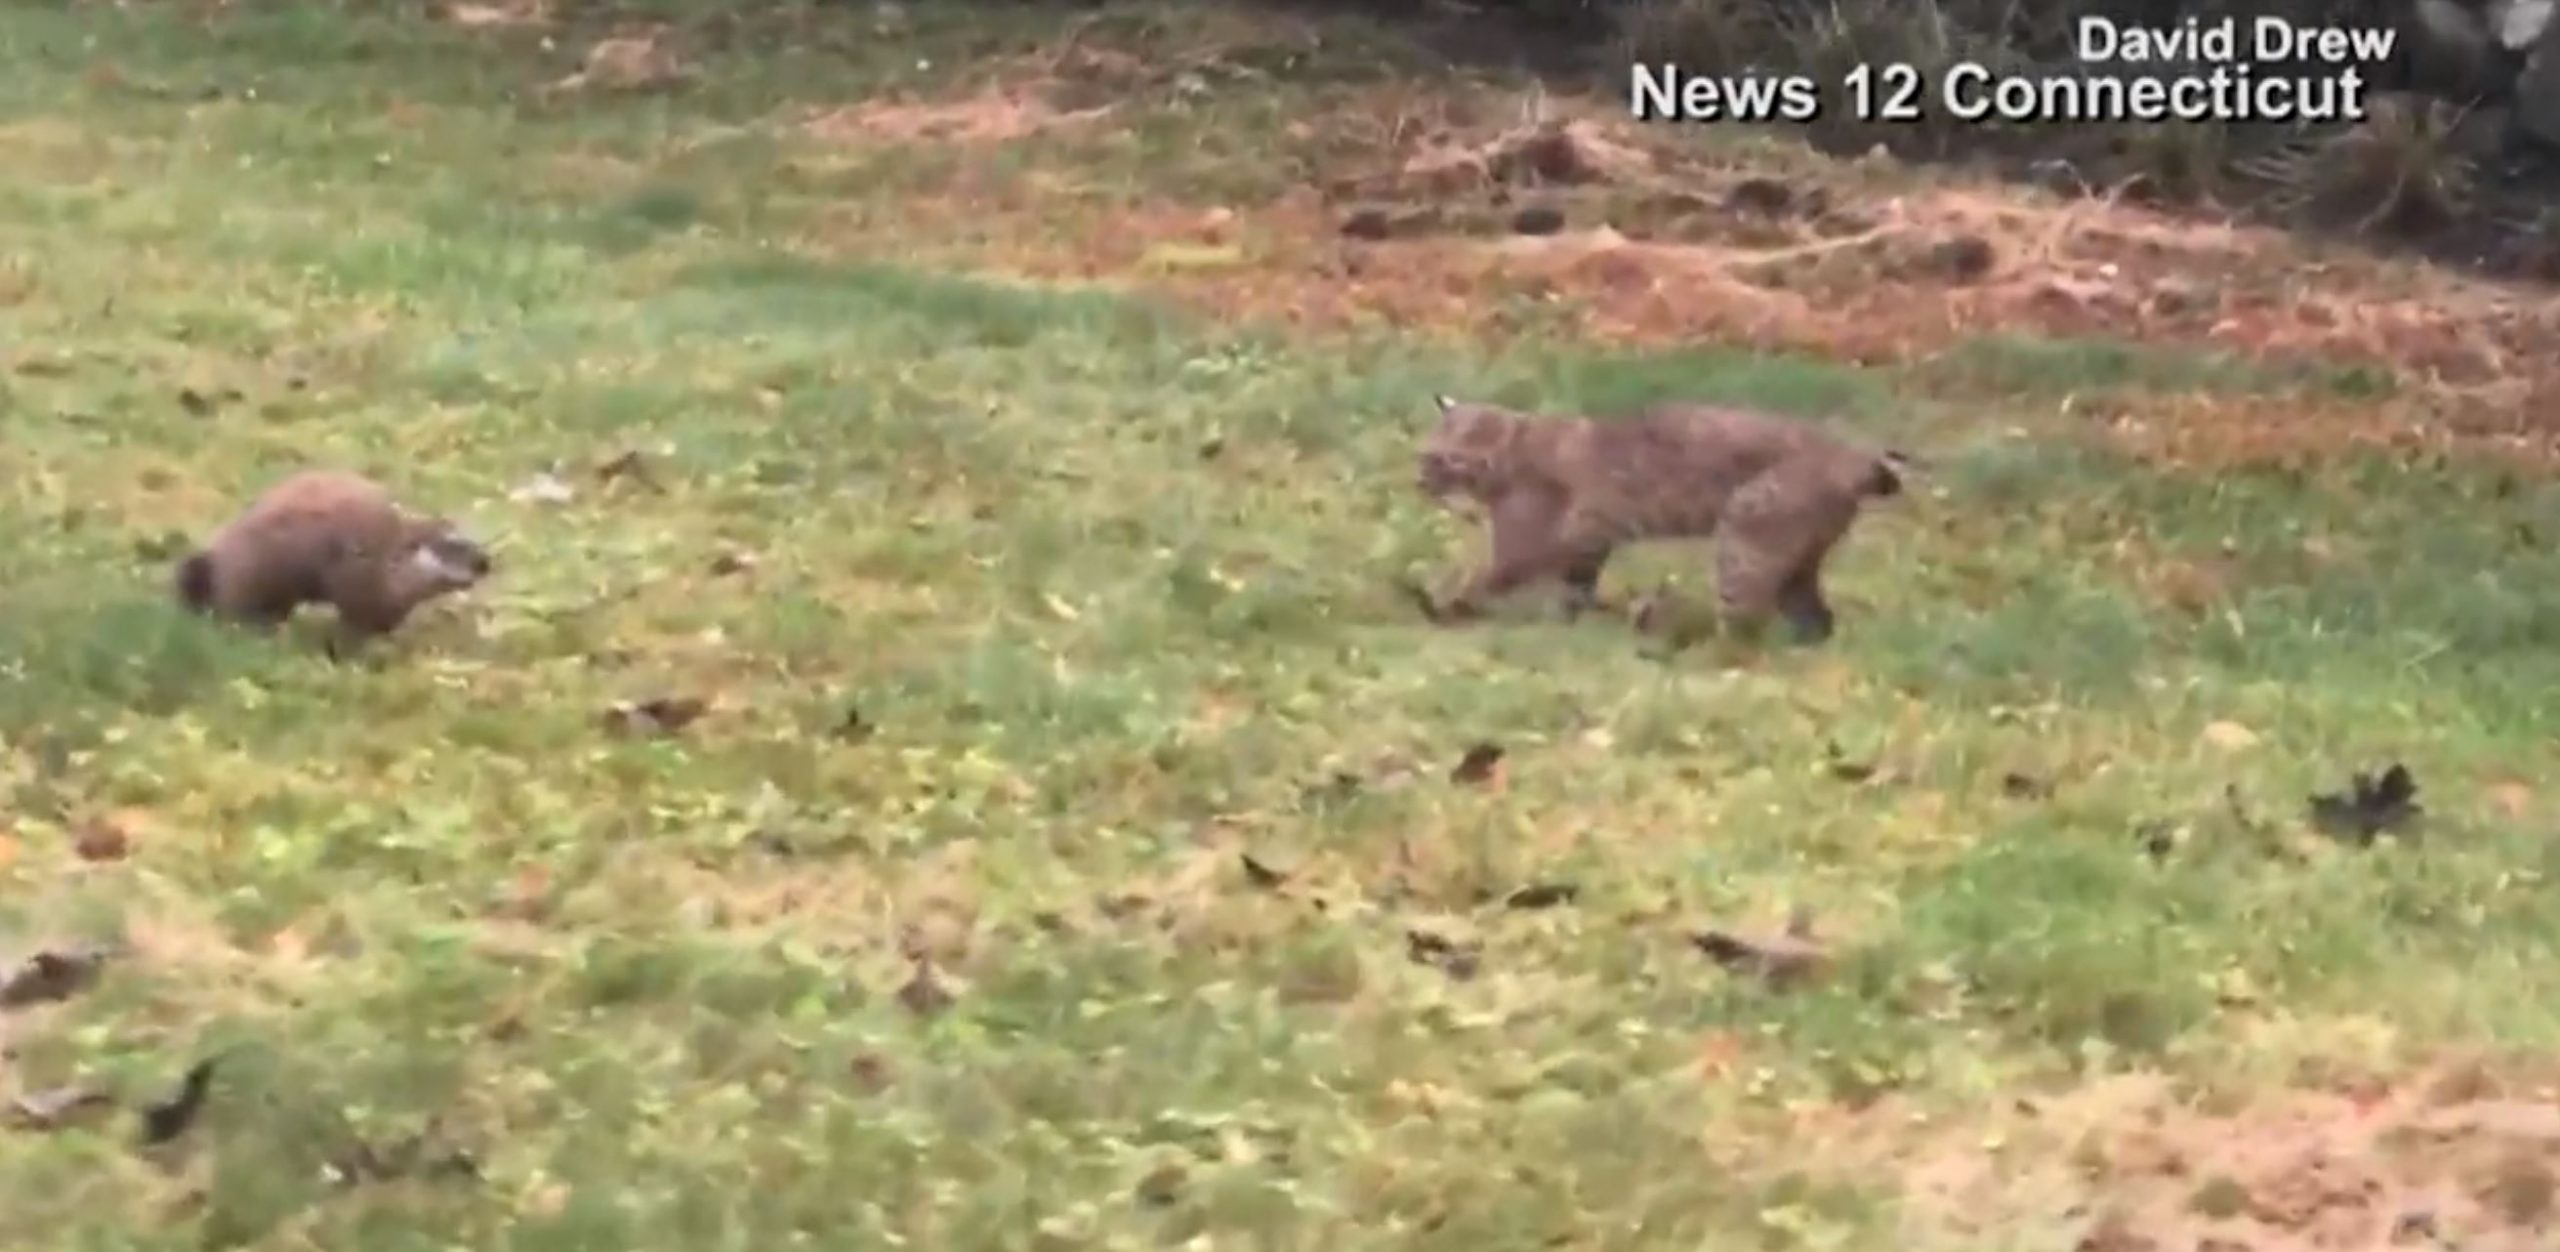 Groundhog vs. Bobcat caught on camera in Connecticut